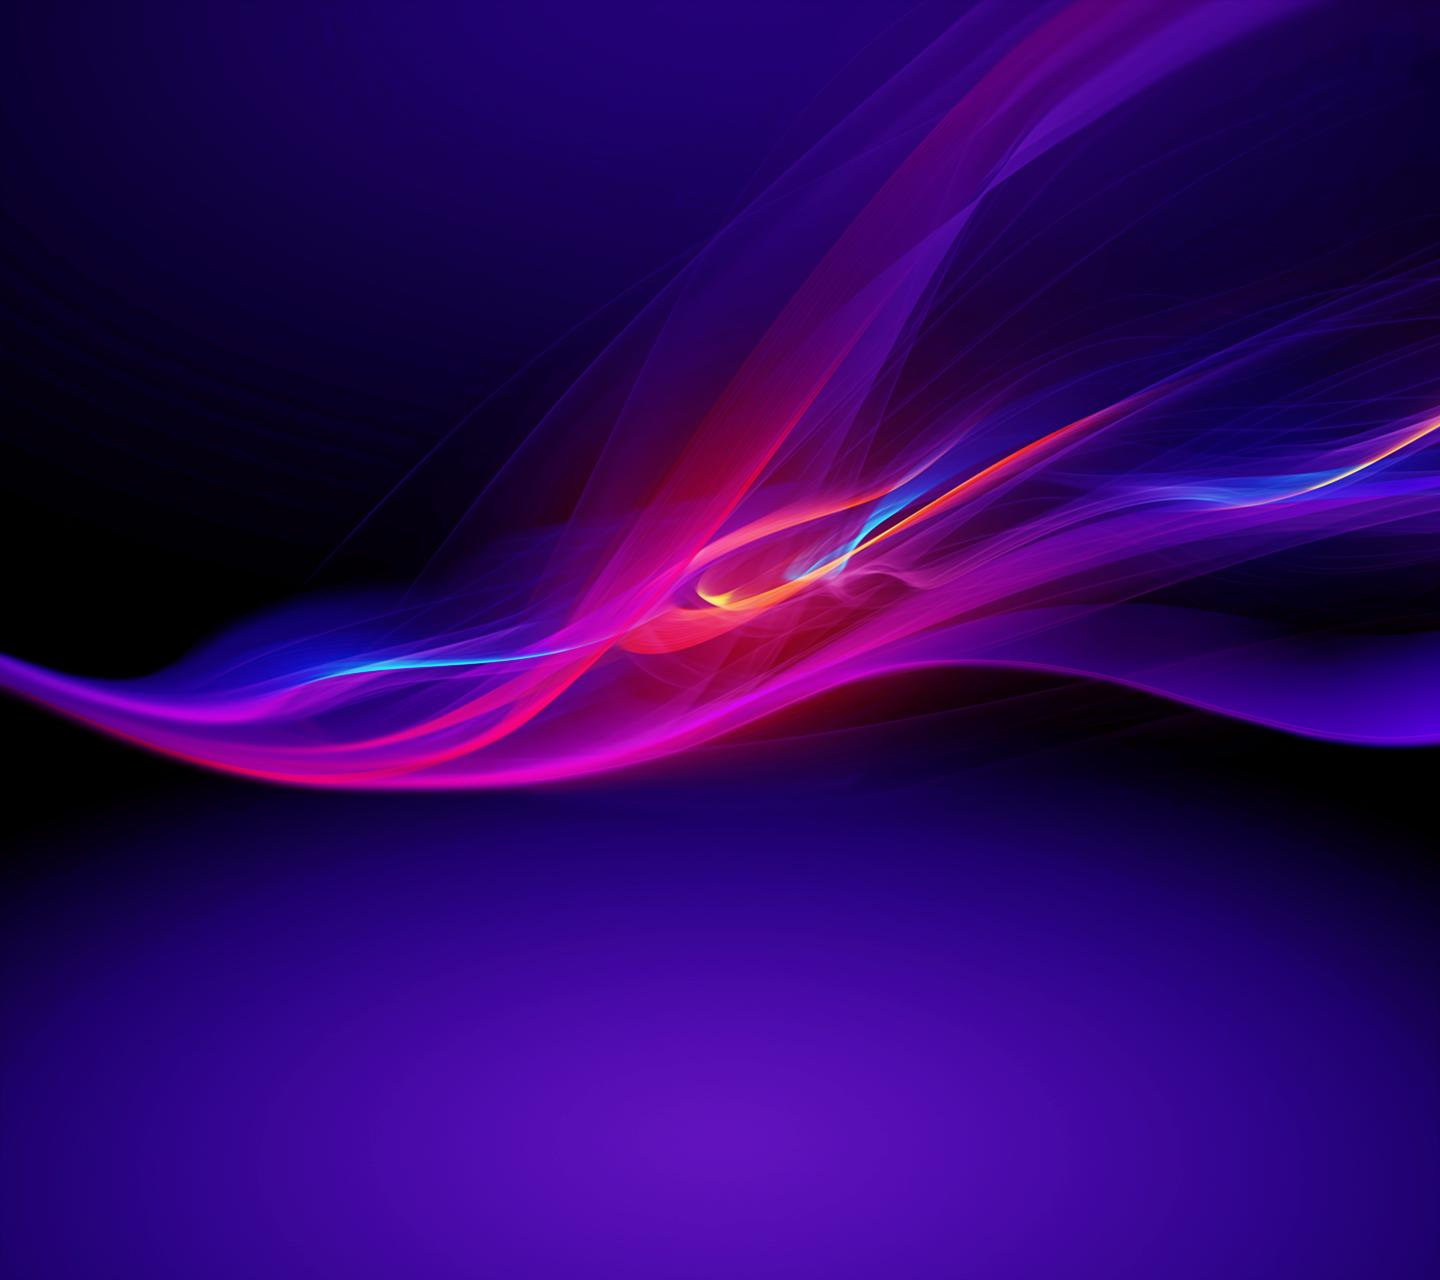 xperia wallpaper hd - photo #2